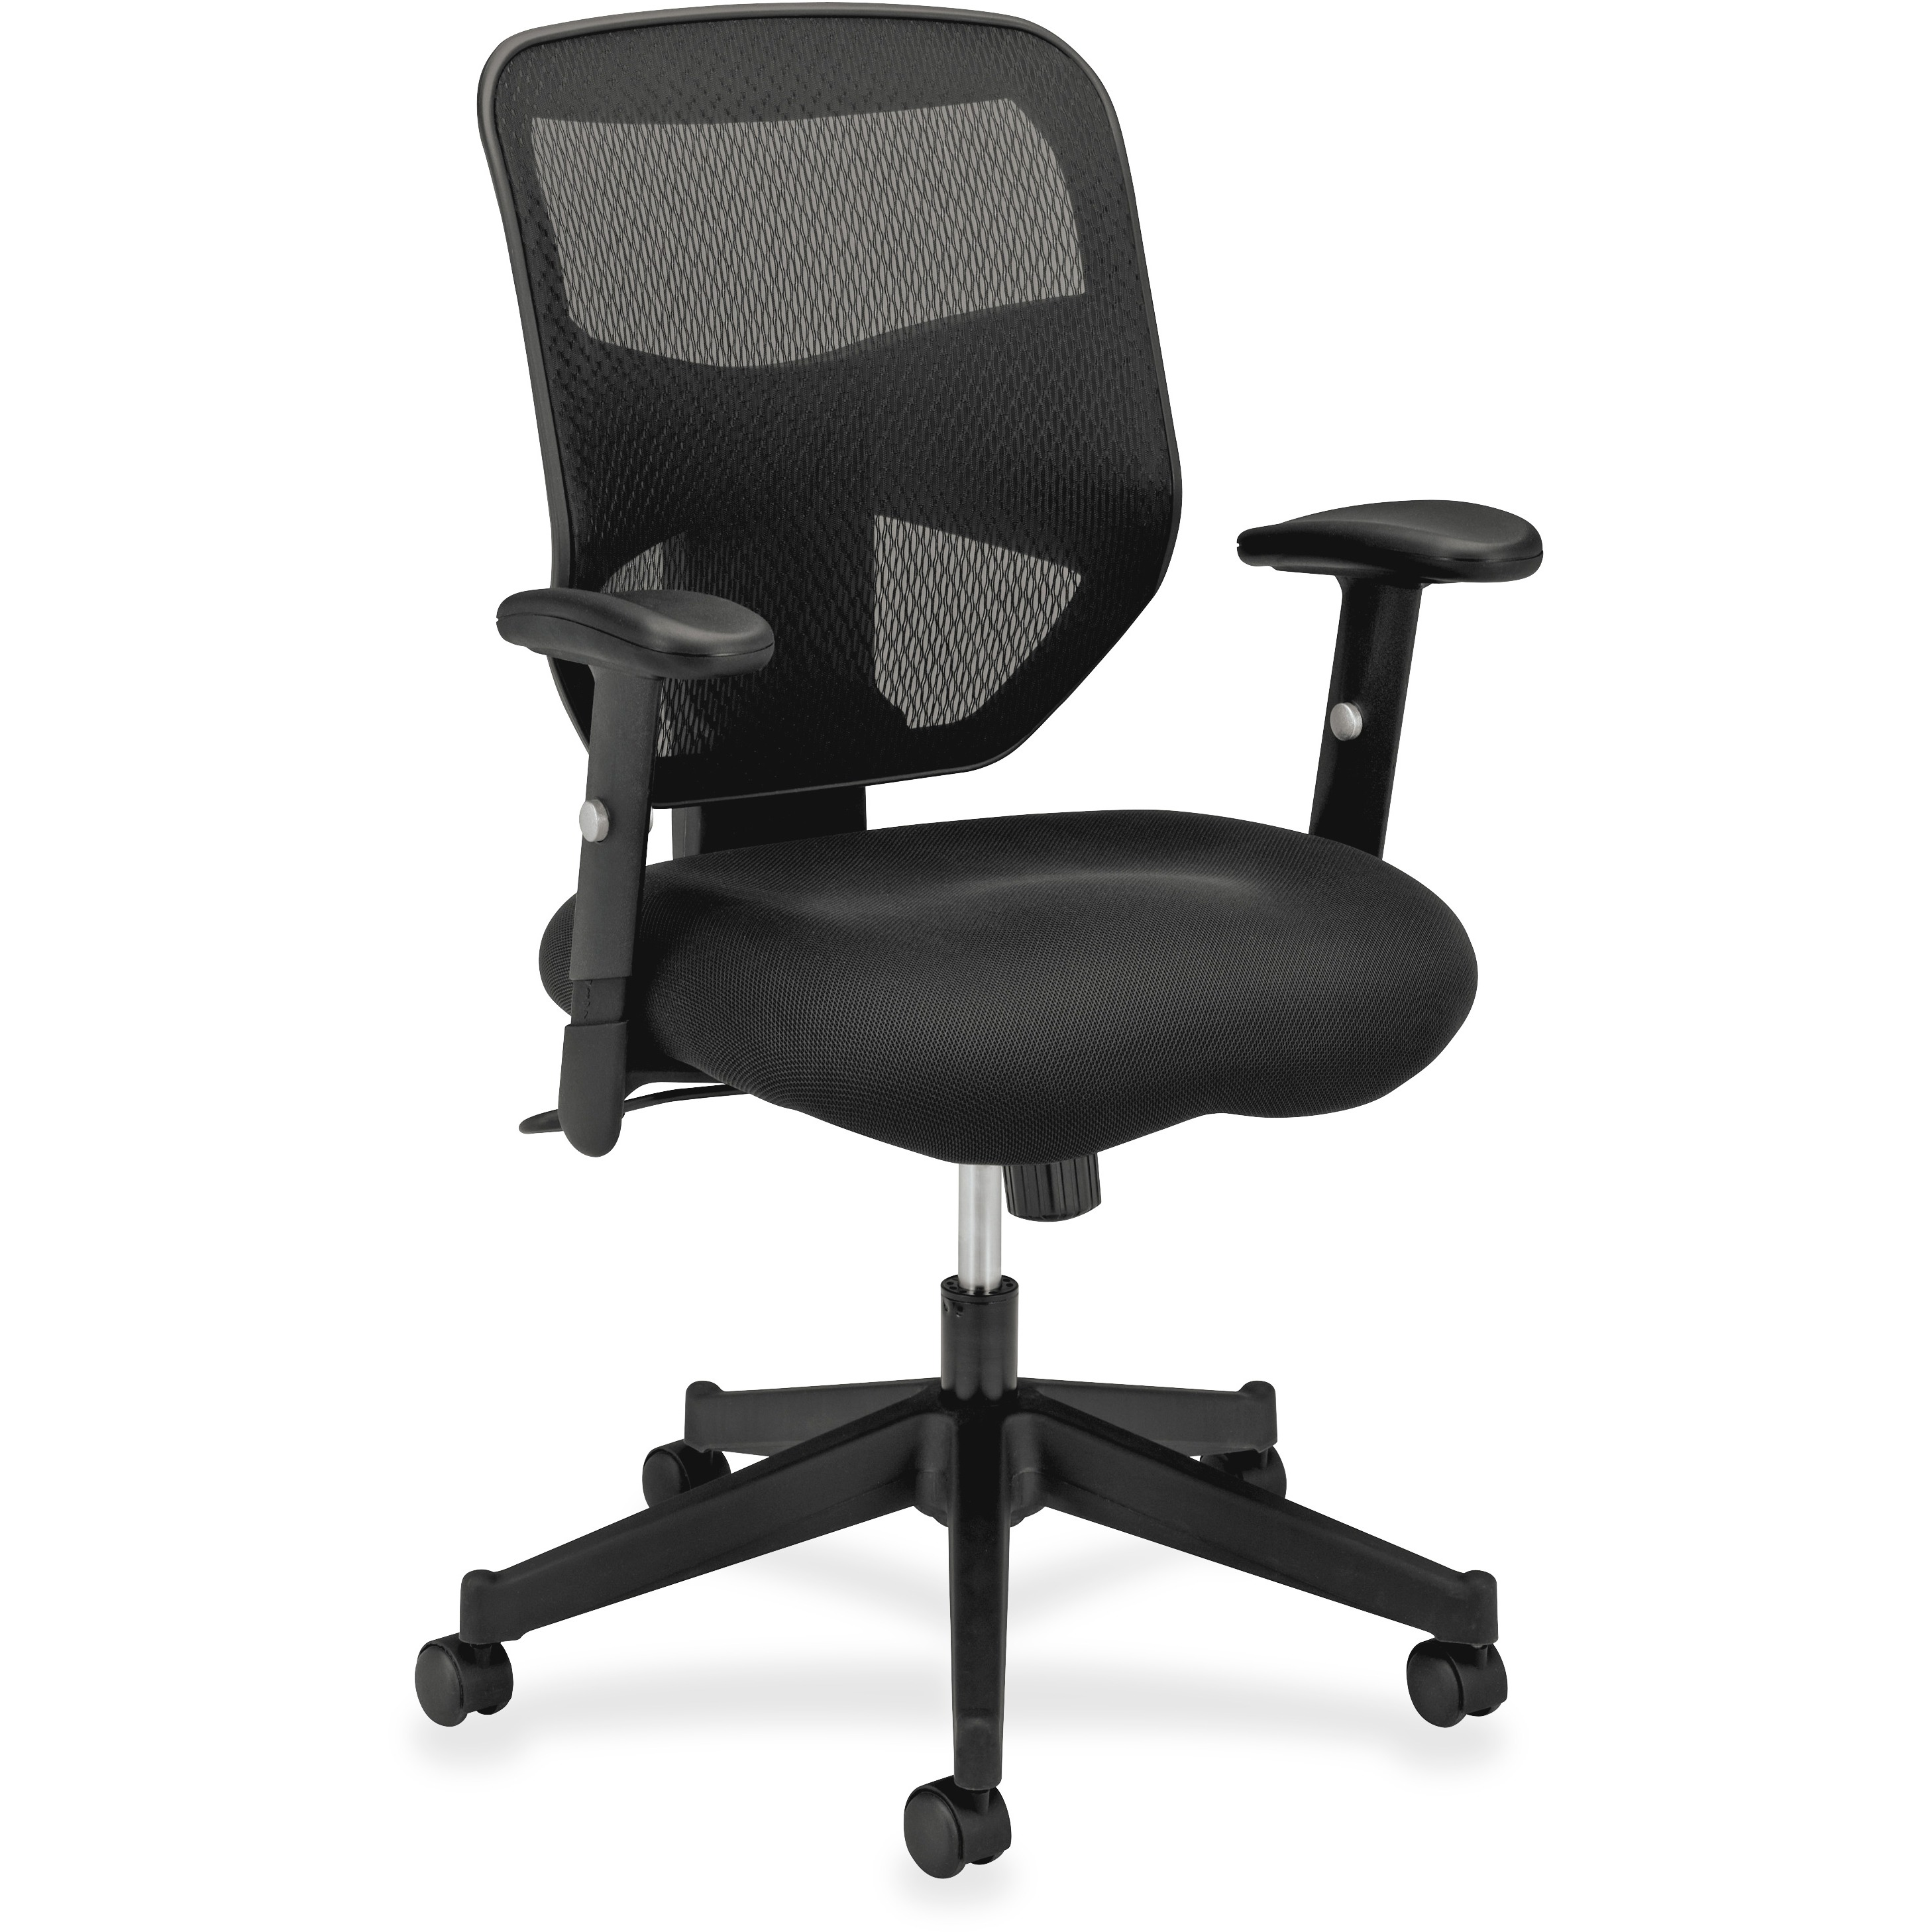 basyx VL531 Series High-Back Work Chair, Mesh Back, Padded Mesh Seat, Black